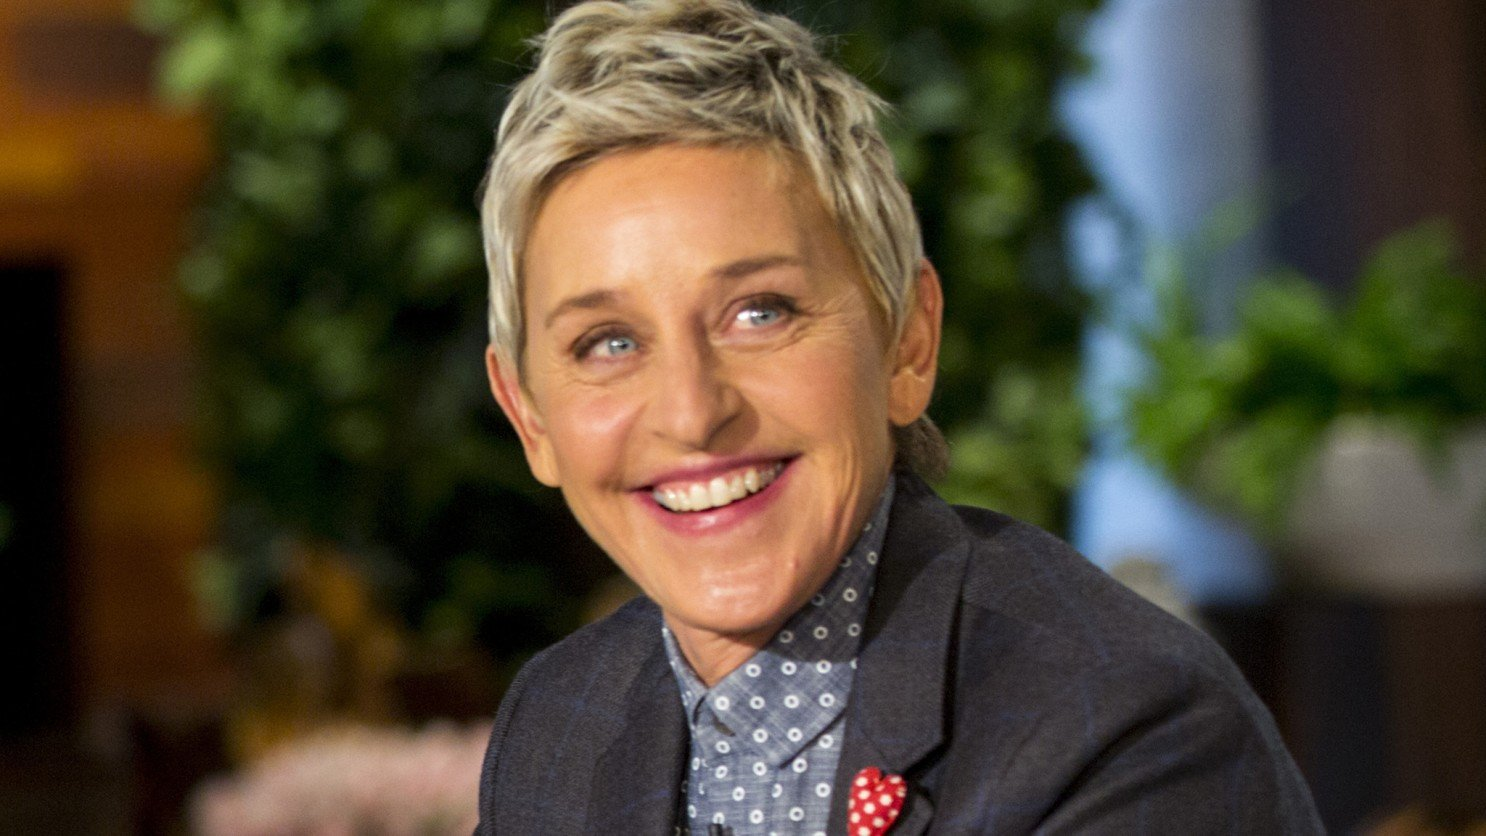 Ellen DeGeneres – 11 Talk Show Employees Come Forward About The 'Toxic Work Environment' They Have Experienced!